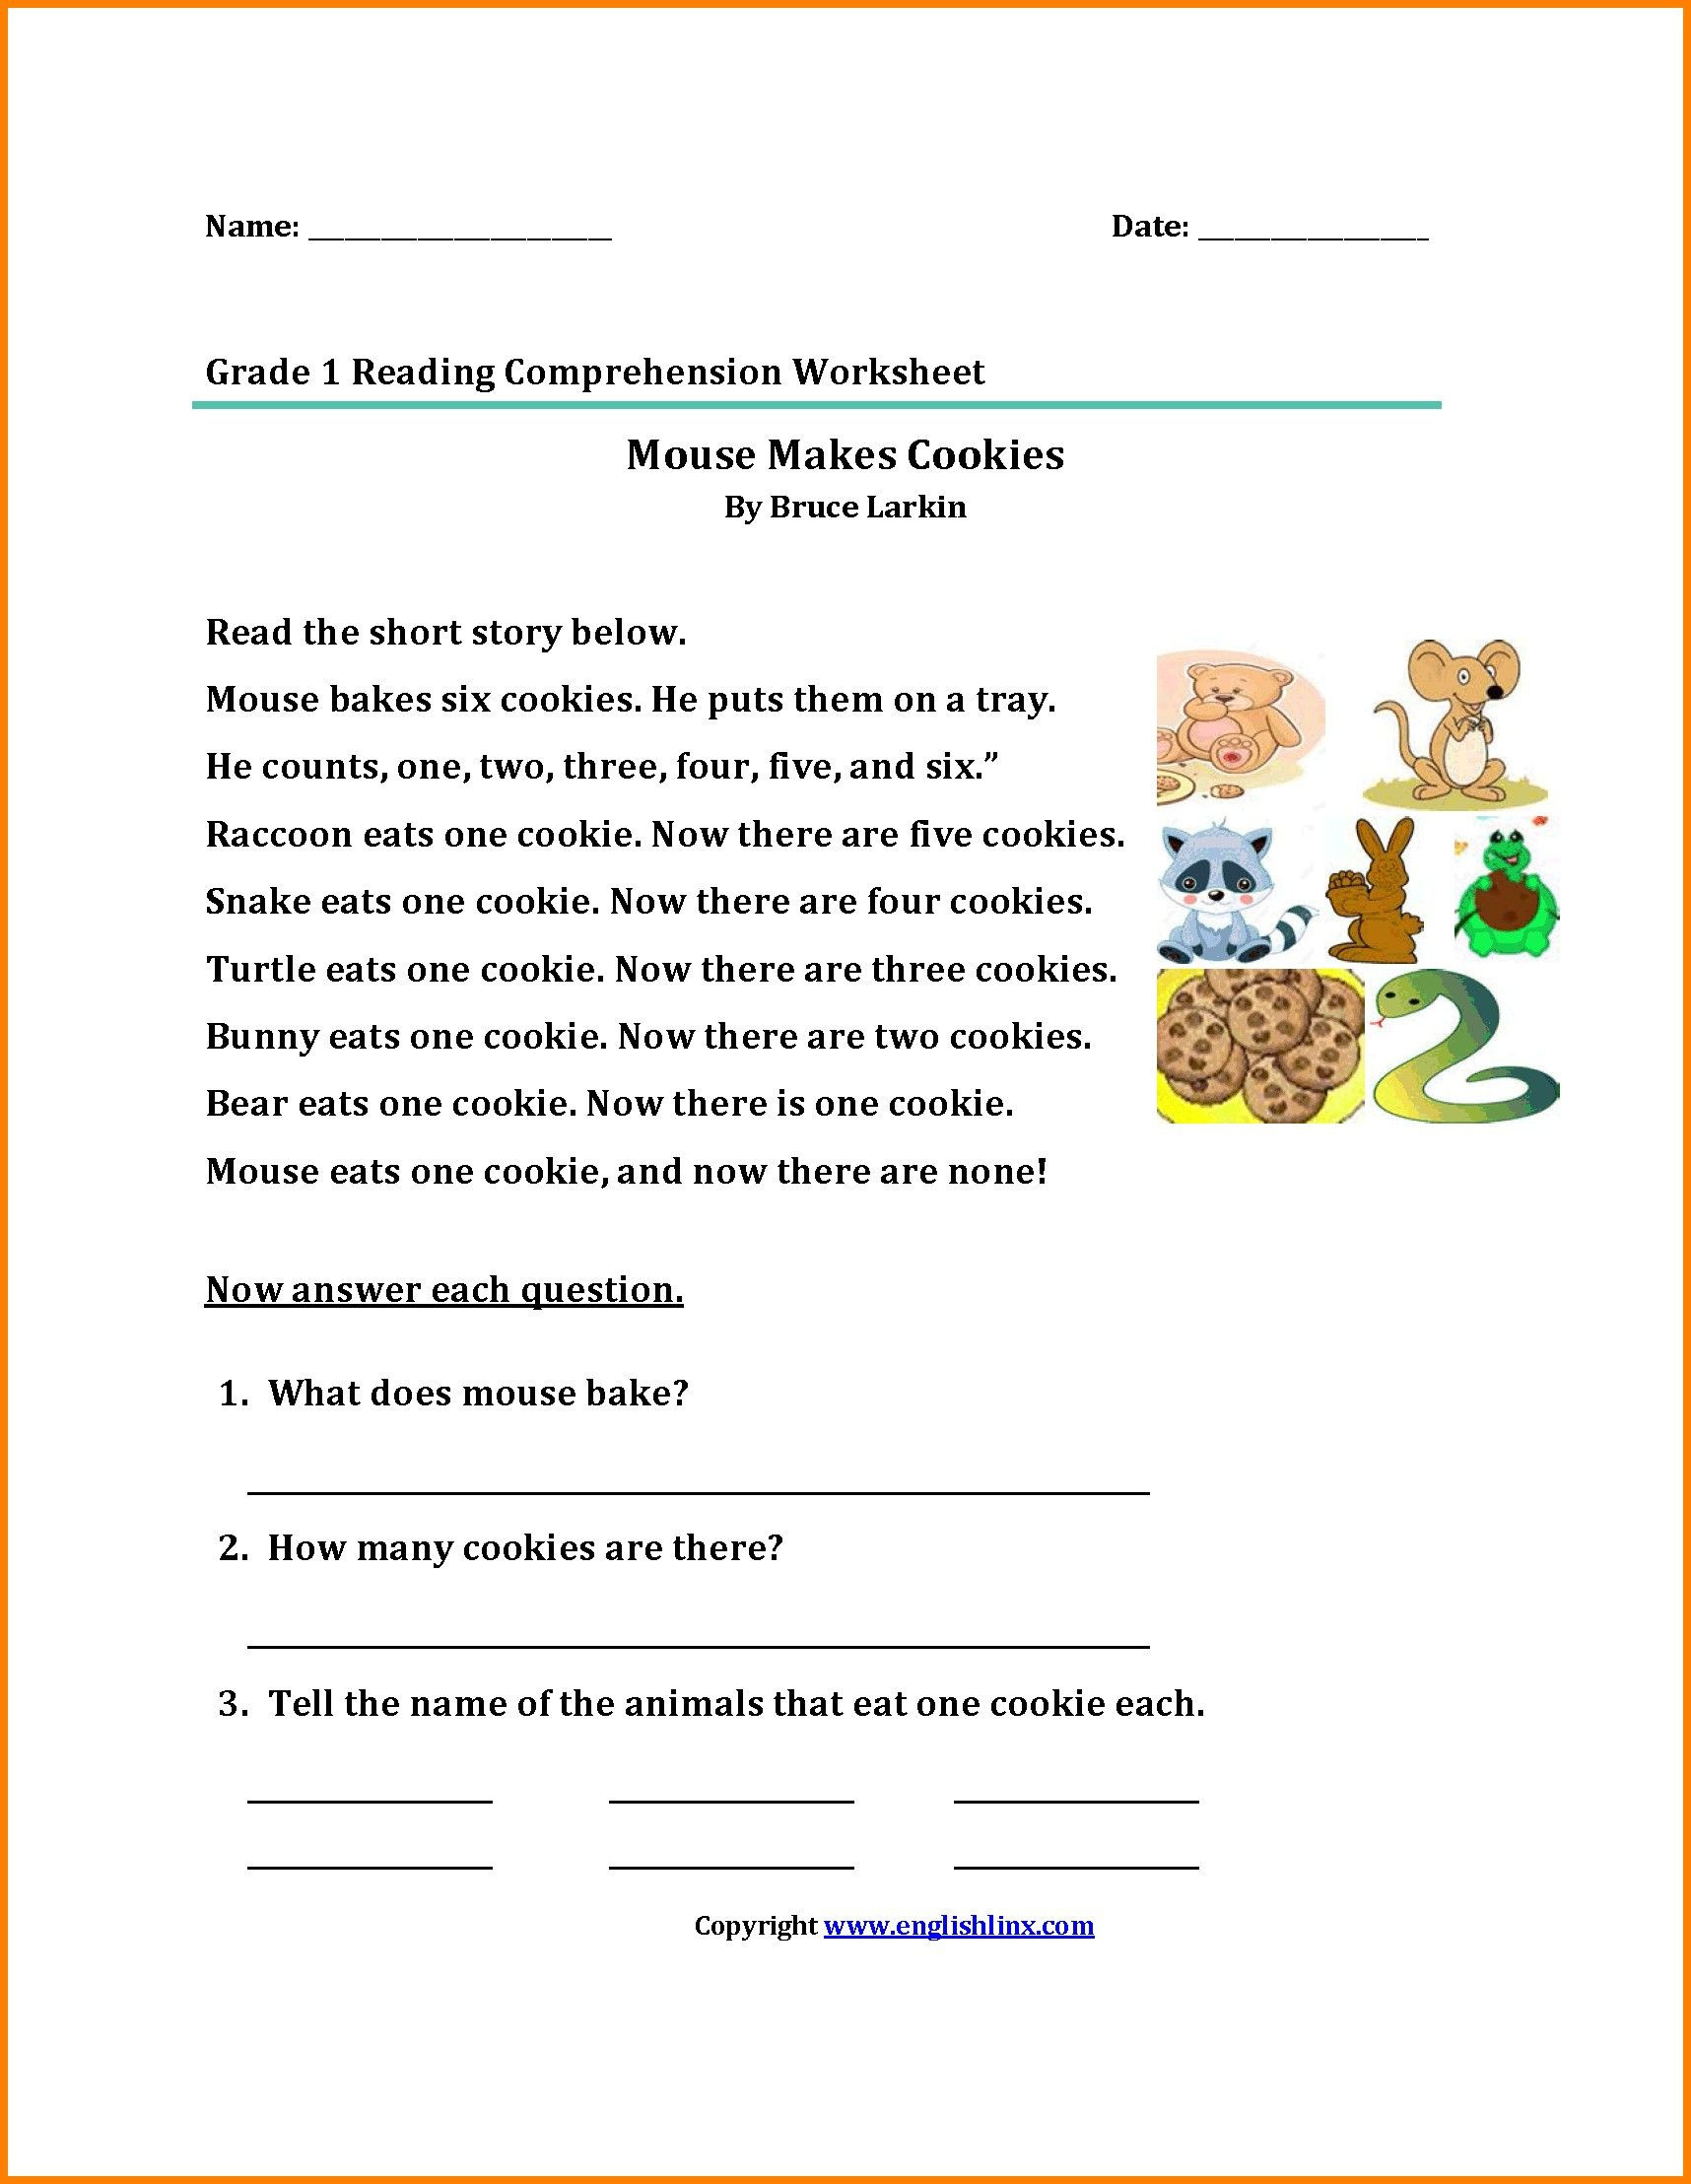 Spanish Reading Comprehension Worksheets 38 Innovative Reading Prehension Worksheets Design Ideas